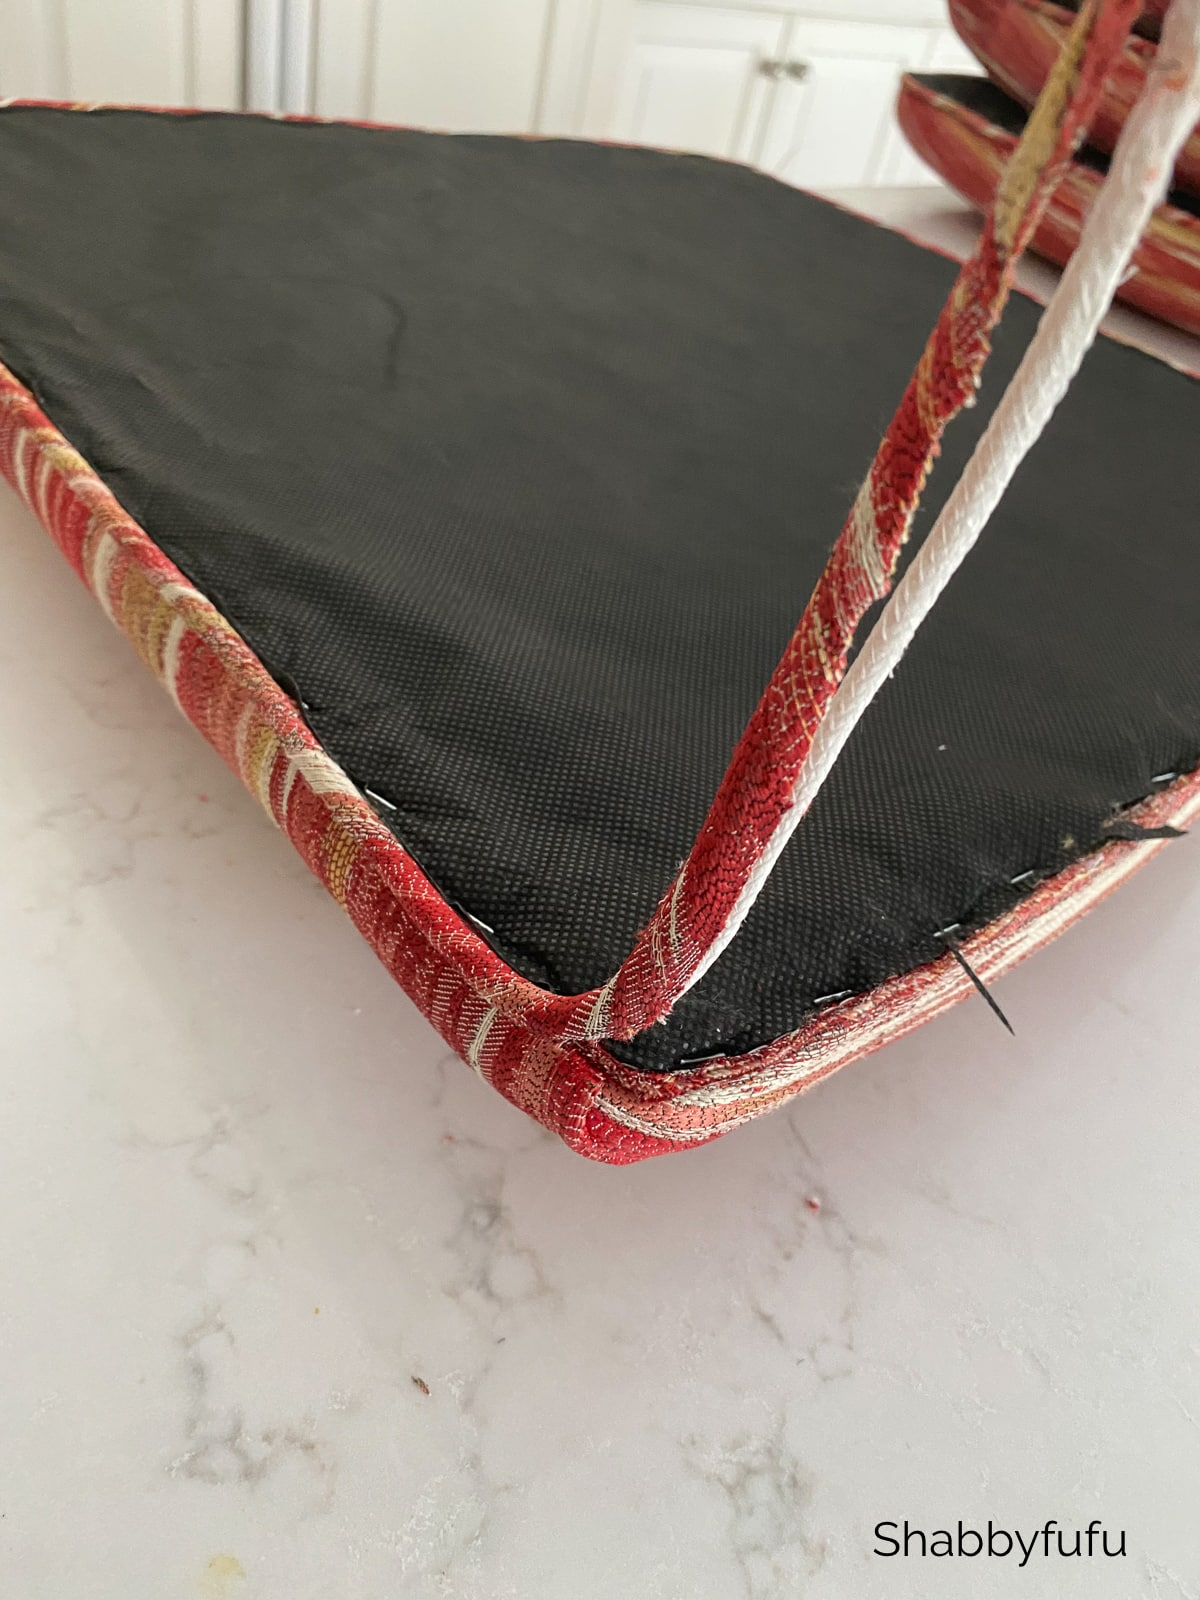 removing piping from a chair